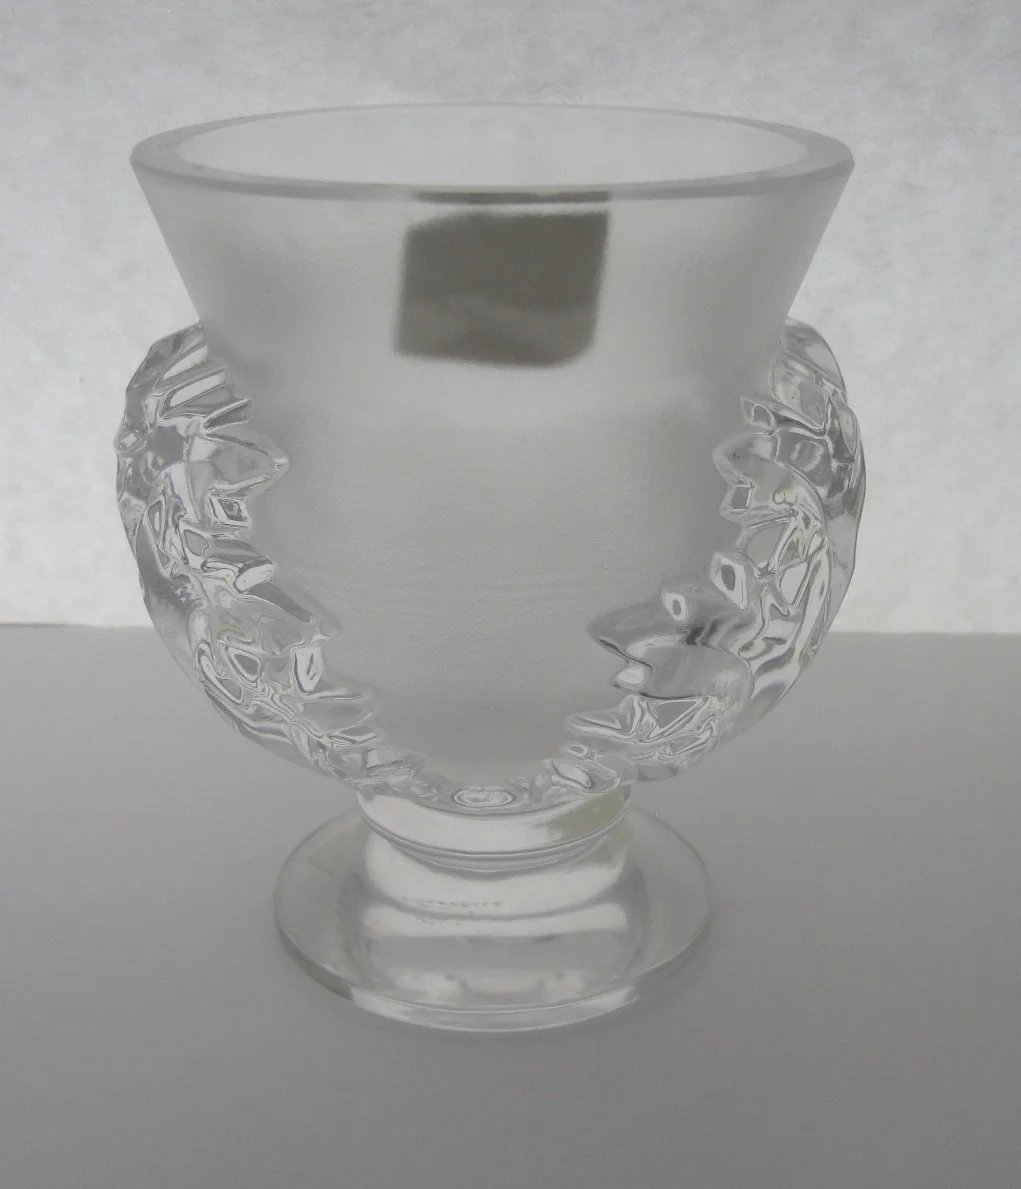 Lalique st cloud vase 1960s never used original labels black click to expand reviewsmspy